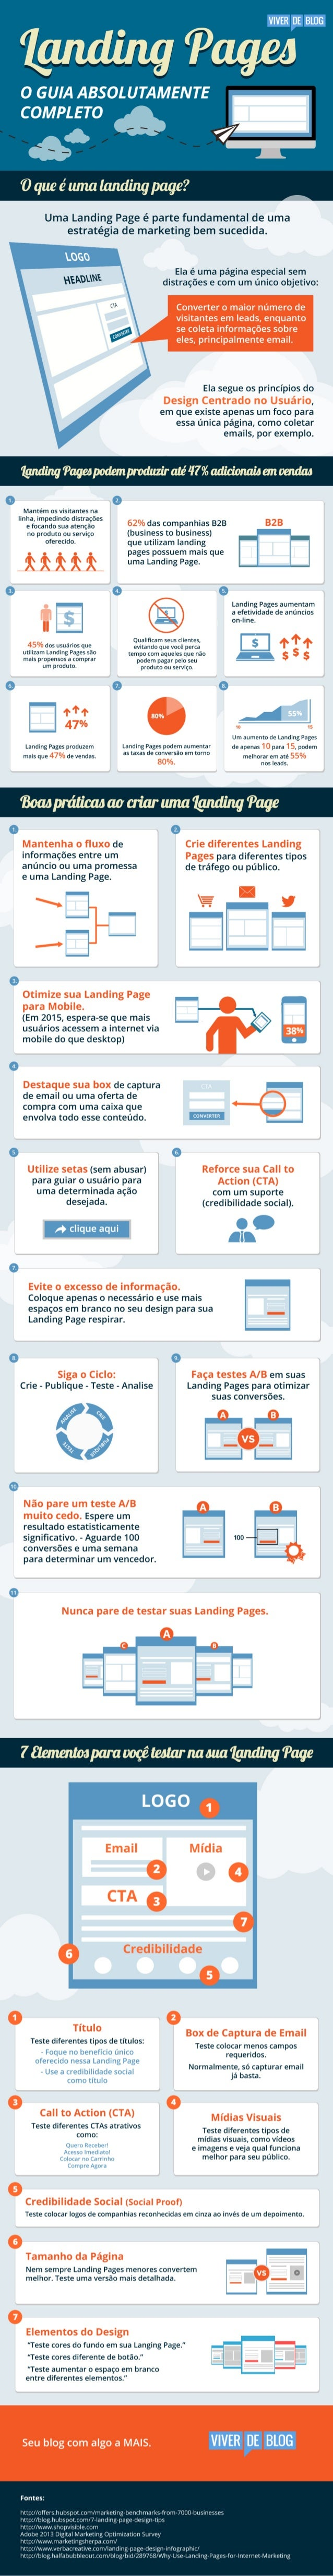 Infográfico landing pages. Guia completo!